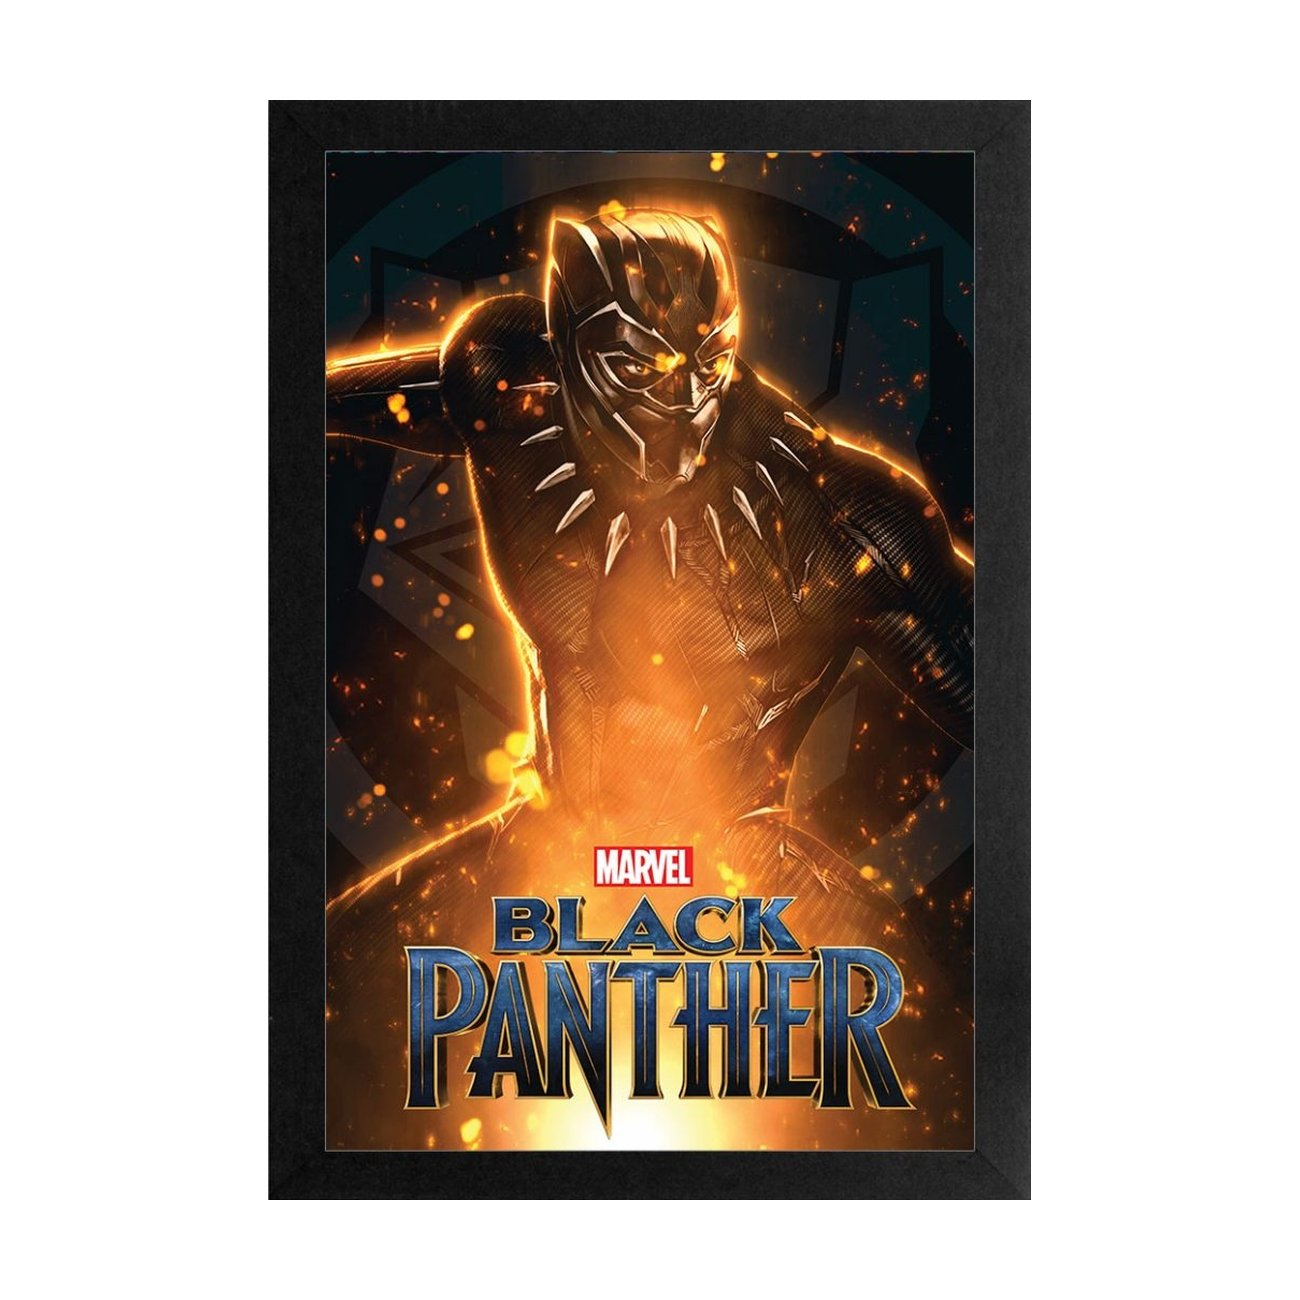 The Black Panther: Spark by Pyramid America (Marvel Comics)